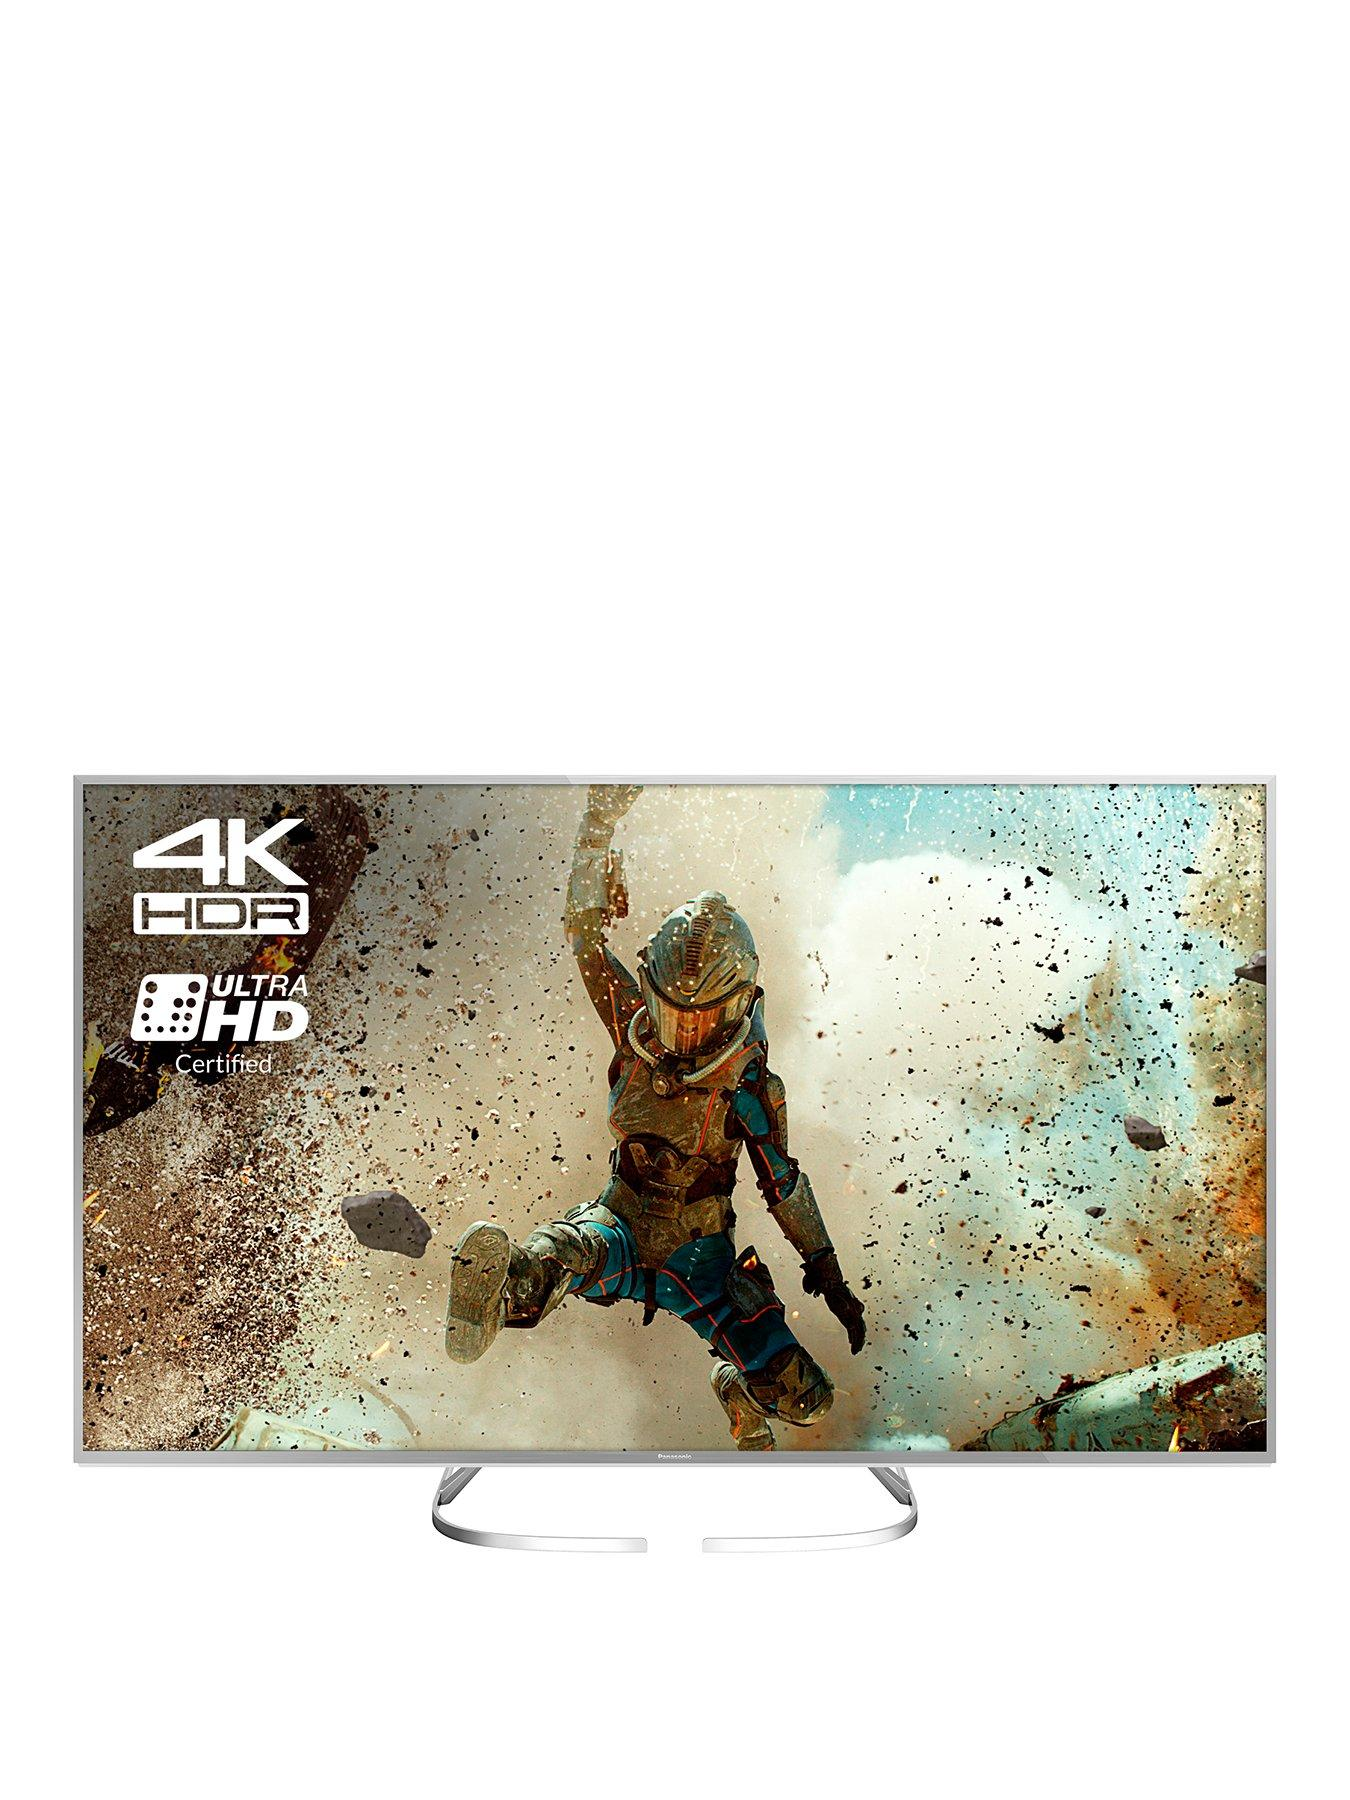 TX-58EX700B 58 inch, 4K Ultra HD Certified�HDR, Freeview Play, Smart LED TV.